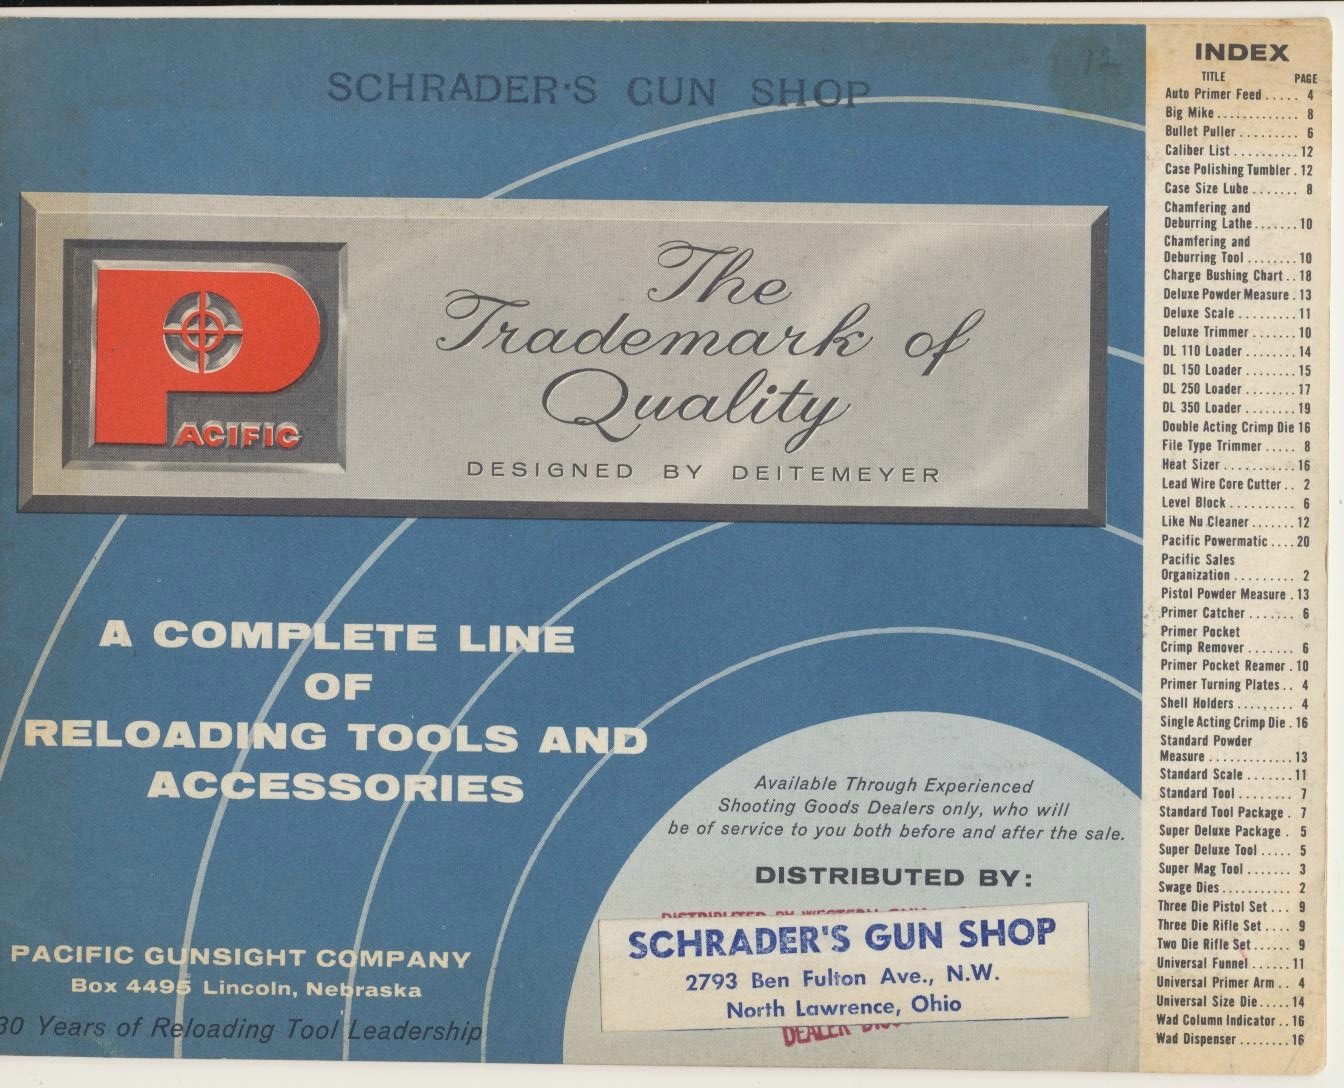 1964 Pacific Gunsight Co Reloading Tools & Accessories Catalog